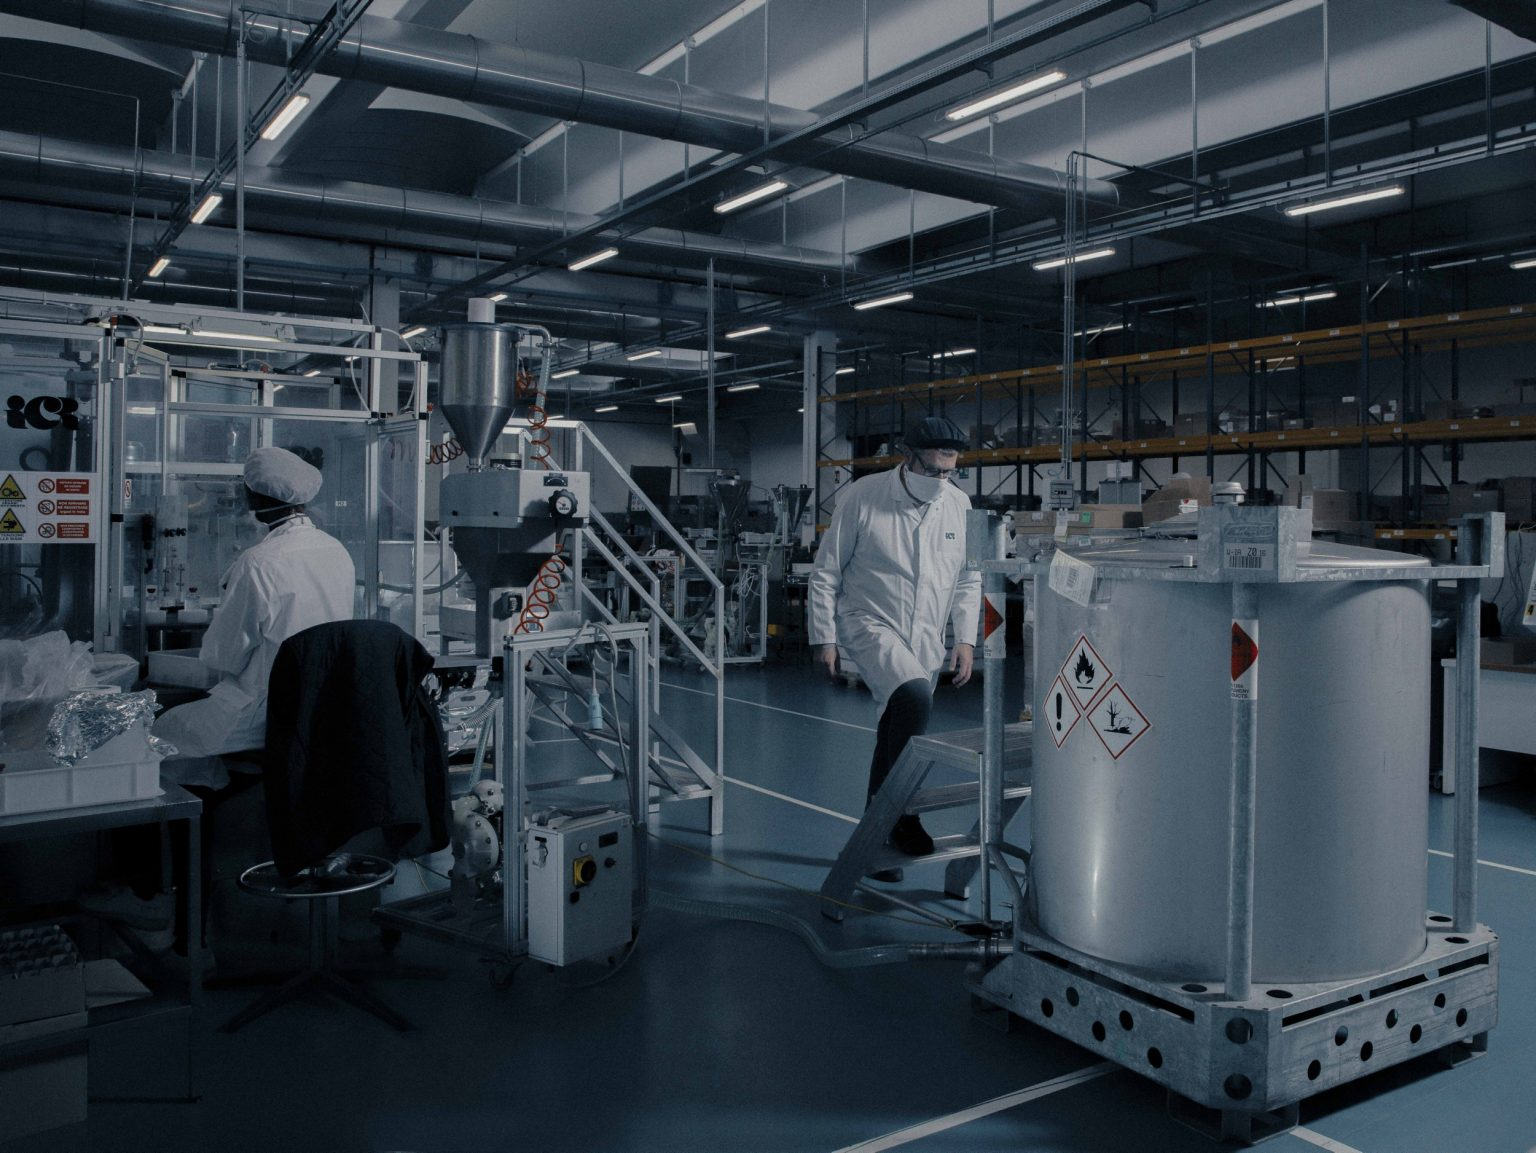 Inside ICS S.p.a. (Industrie Cosmetiche Riunite), in Lodi, Lombardy.  ICS started producing hand disinfectant on behalf of the luxury brand Bulgari in response to the COVID 19 outbreak. In this image: a man inspecting the large tanks containing disinfectant before it gets bottled in the smaller containers. Italy, April, 2020